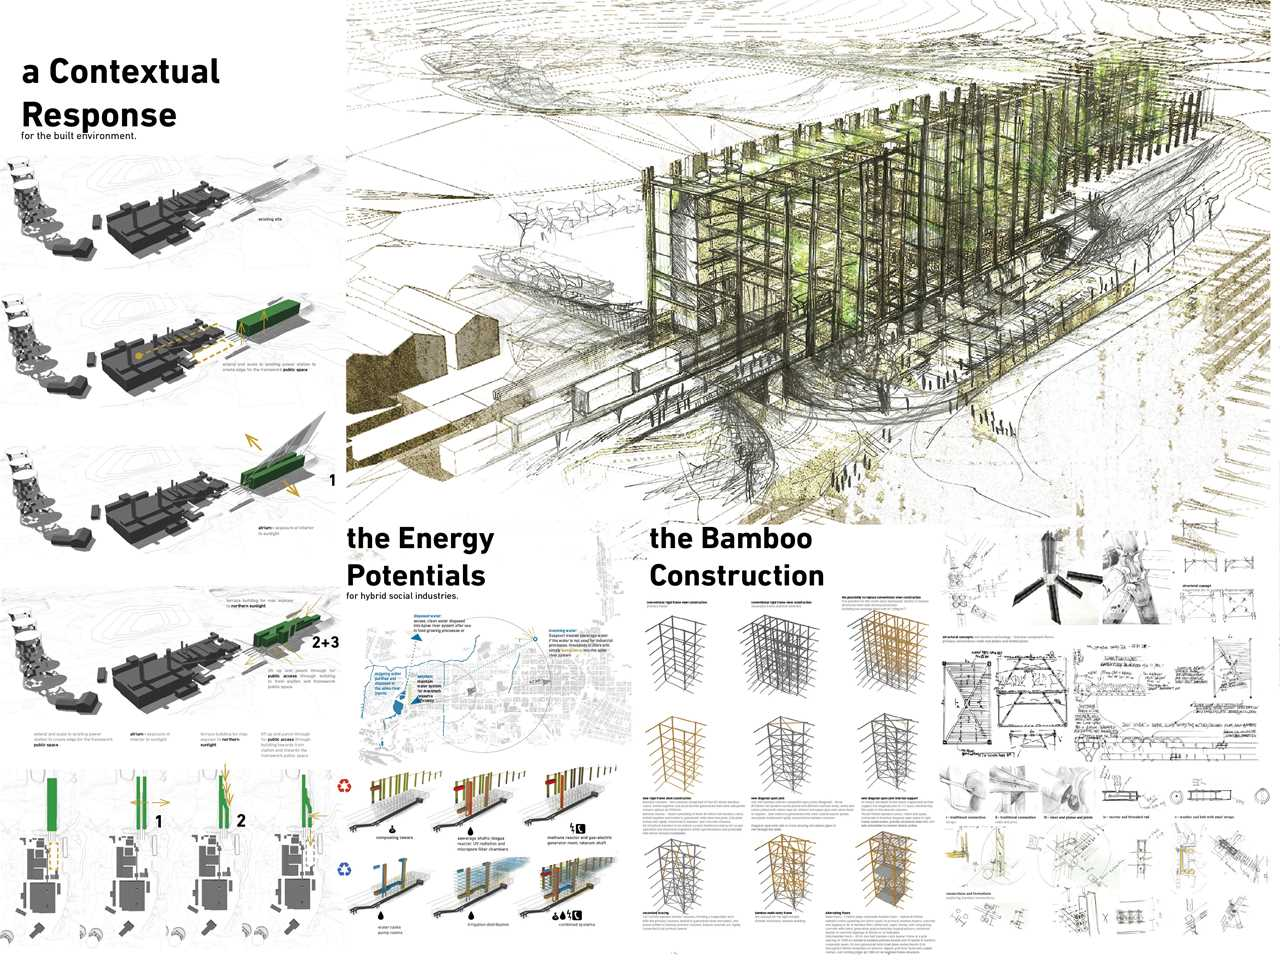 Sketch Floor Plans Adaptive Re Use Of Industrial Site For Urban Agriculture